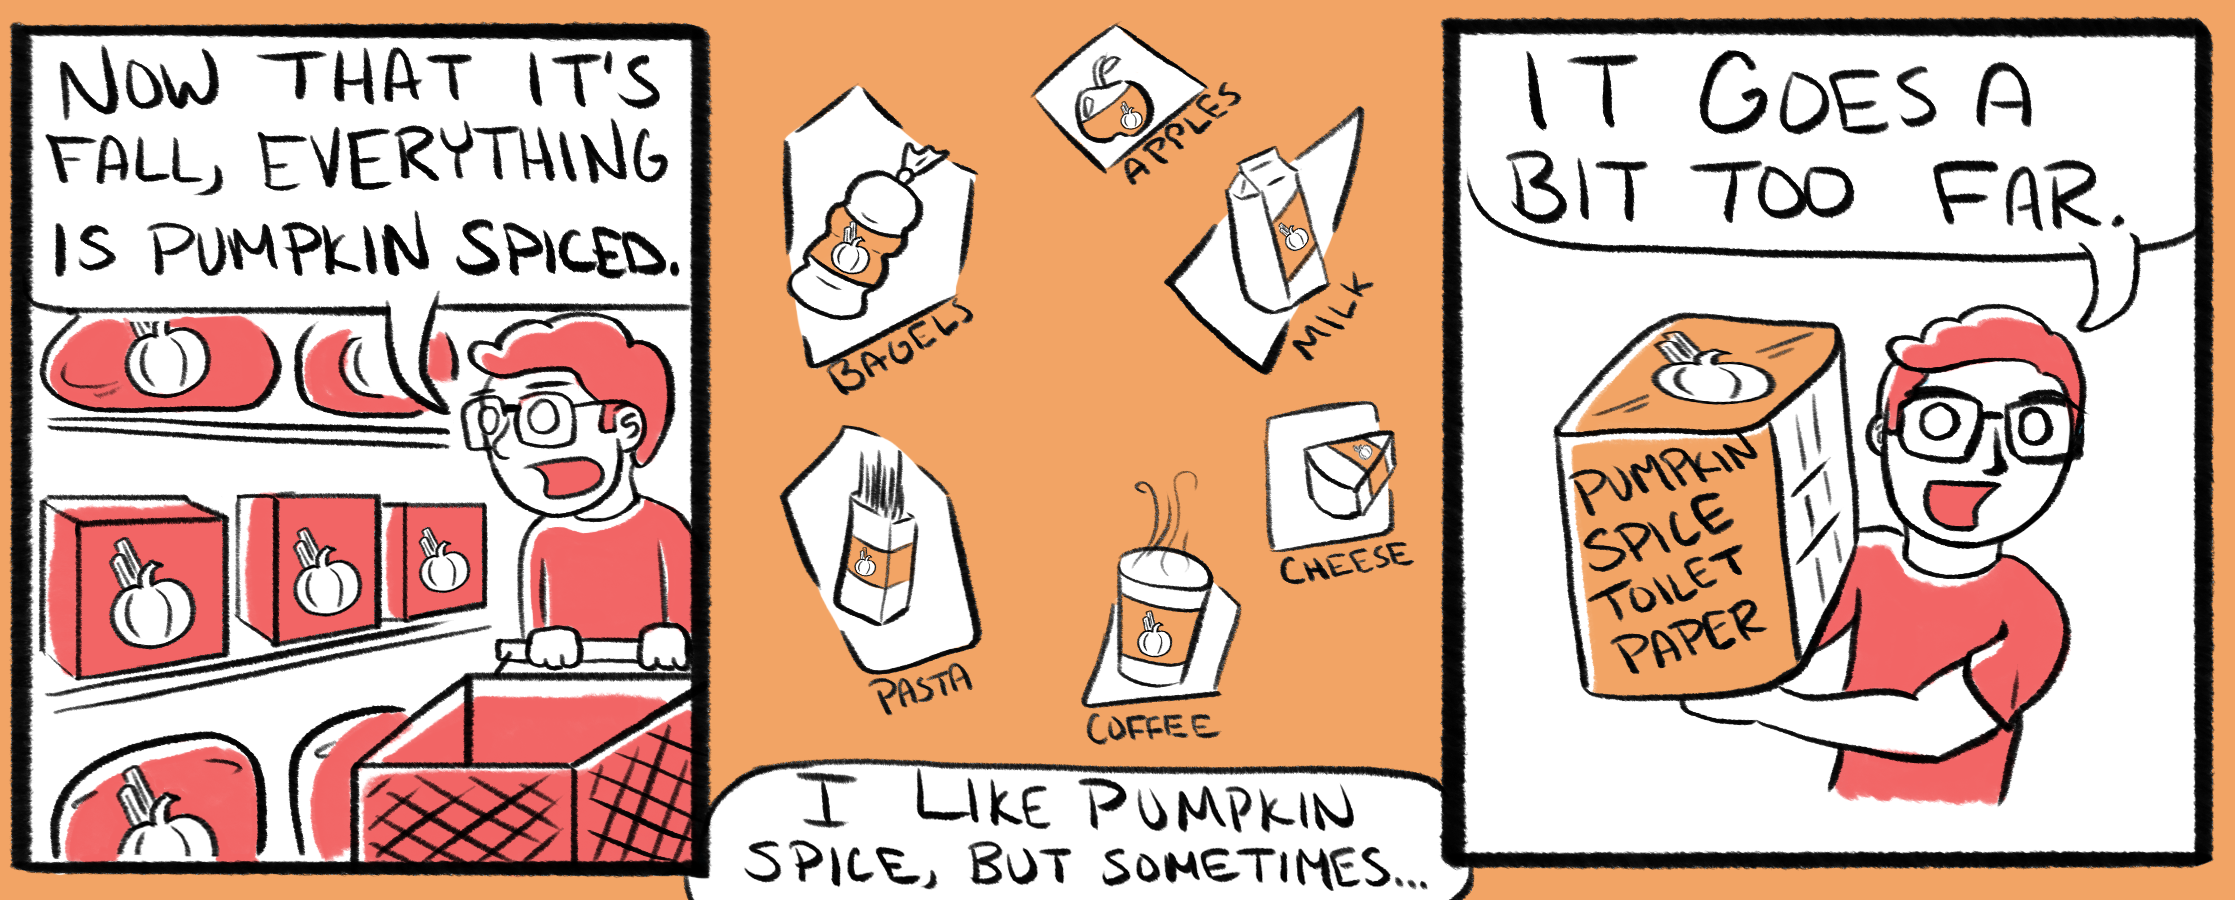 Spice everything